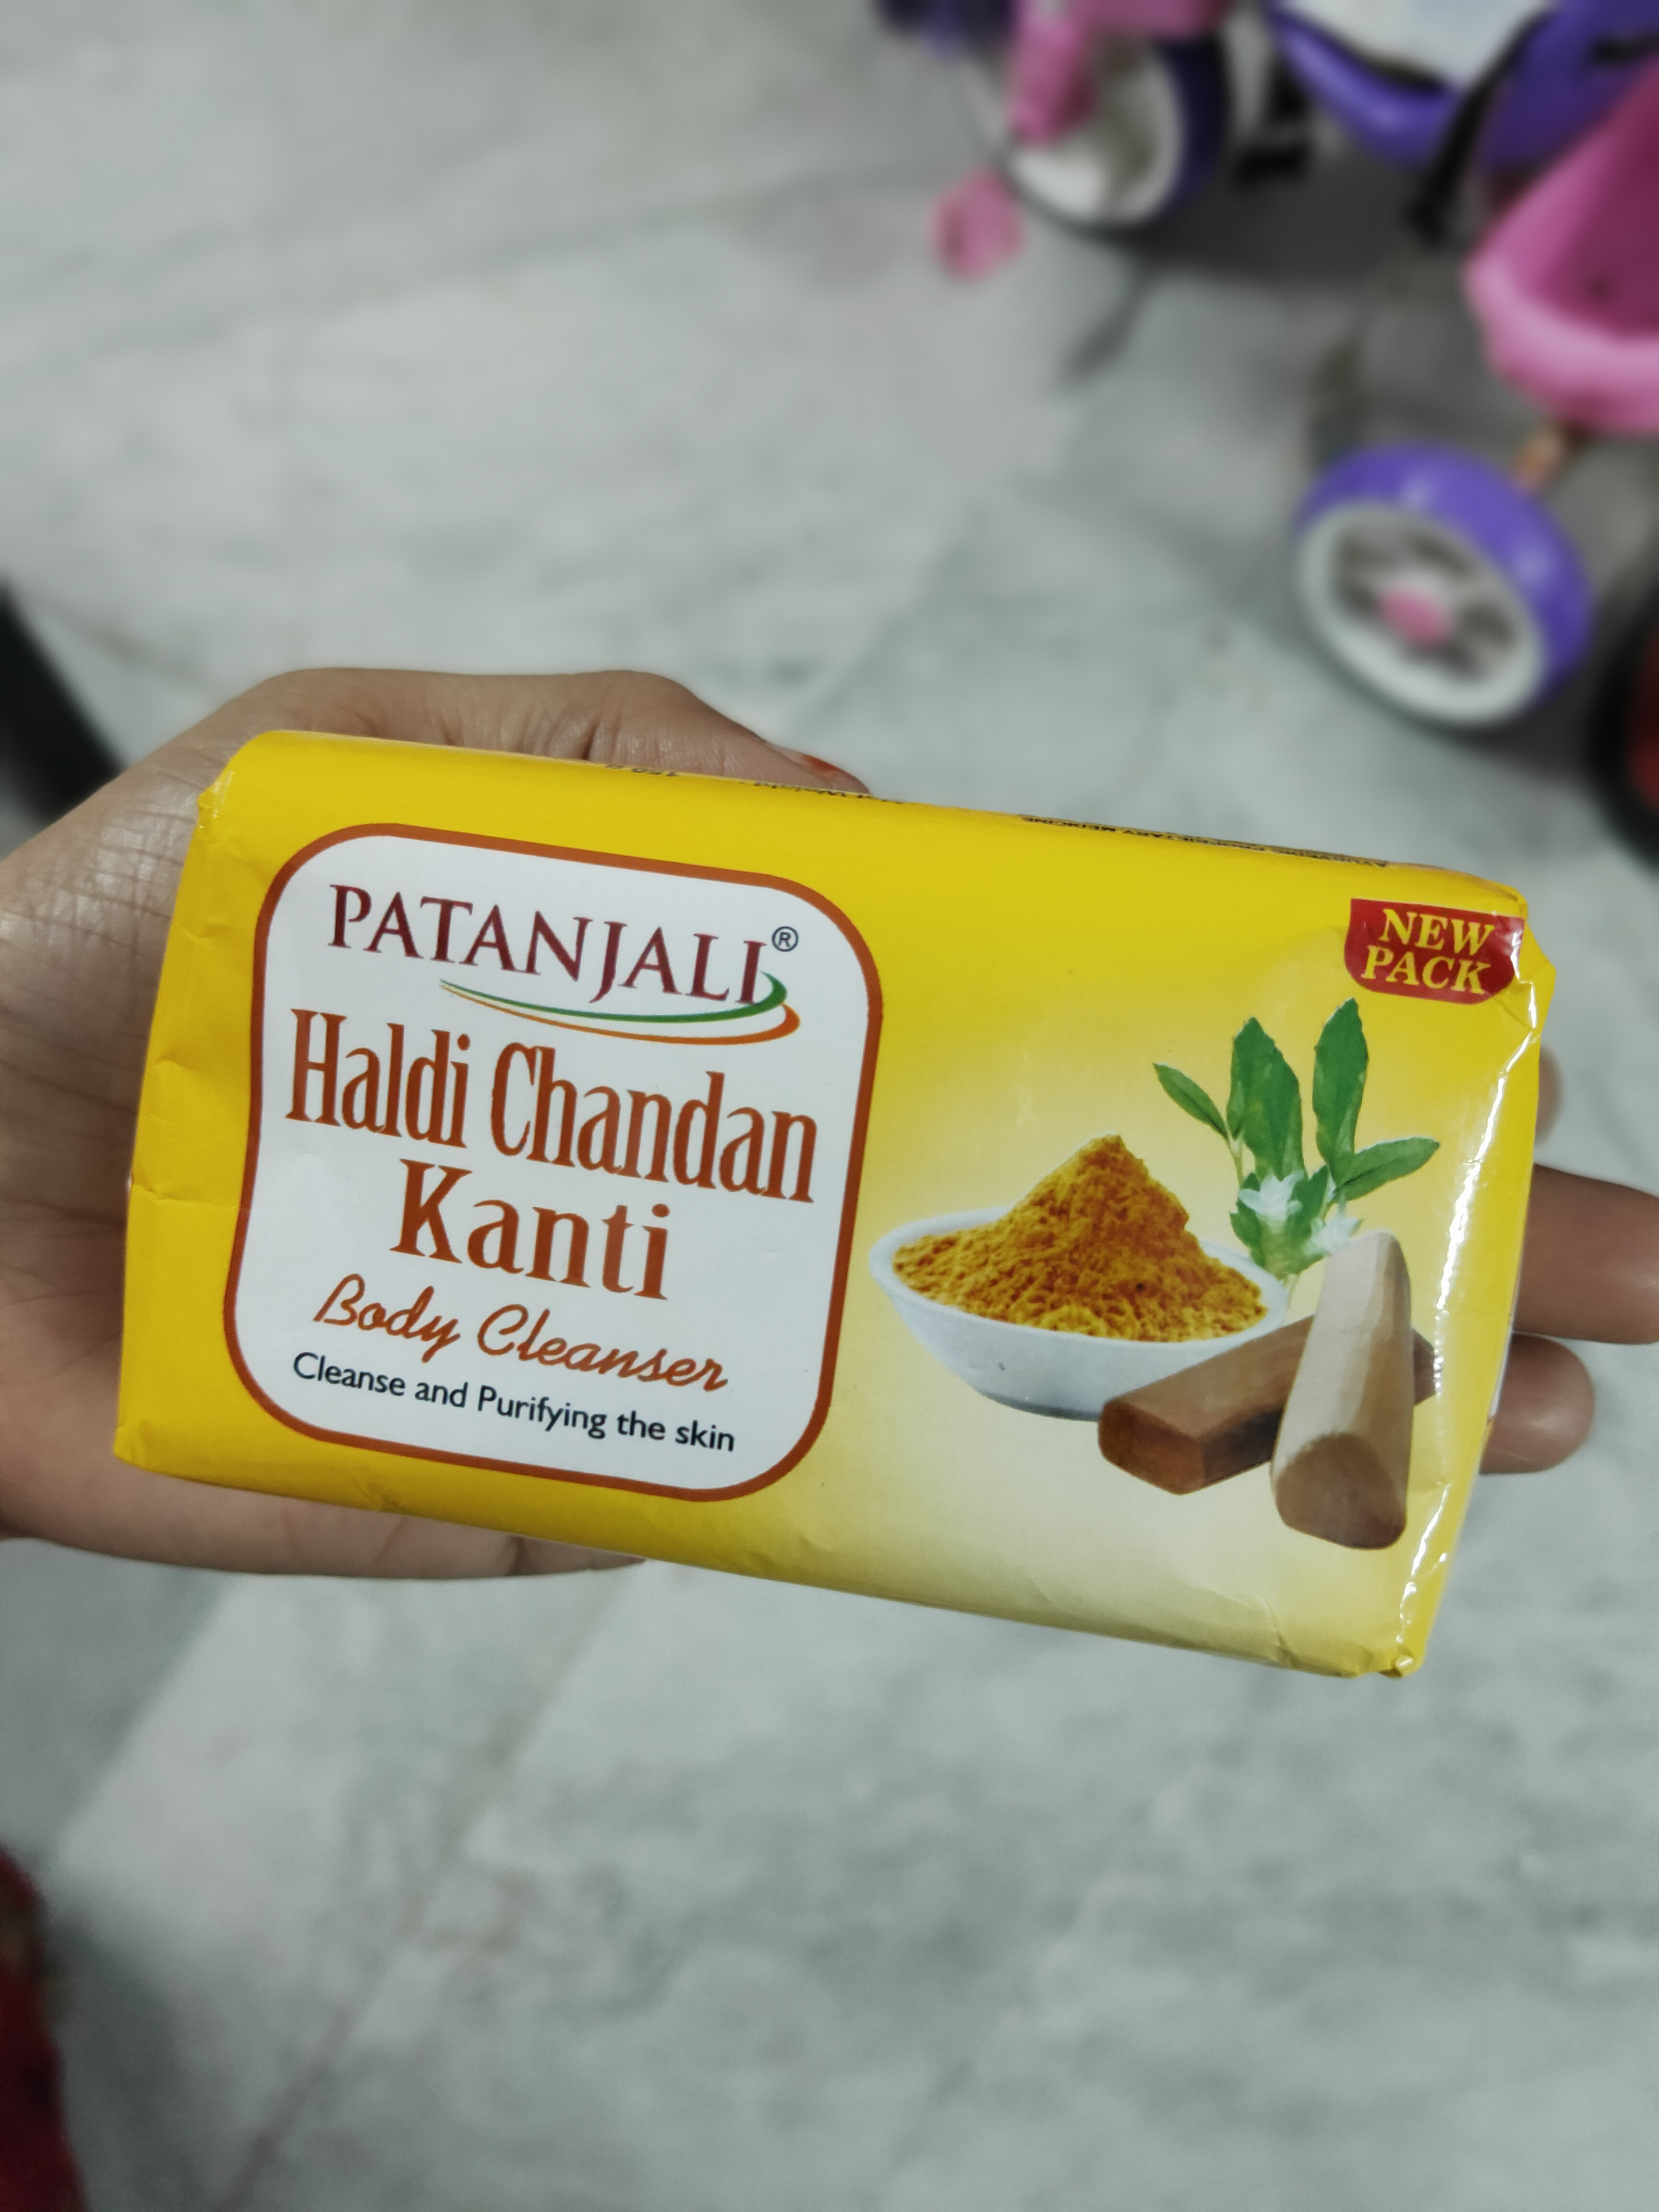 Patanjali Haldi Chandan Kanti Body Cleanser pic 2-Affordable Body Cleanser-By lalitha_satheesh